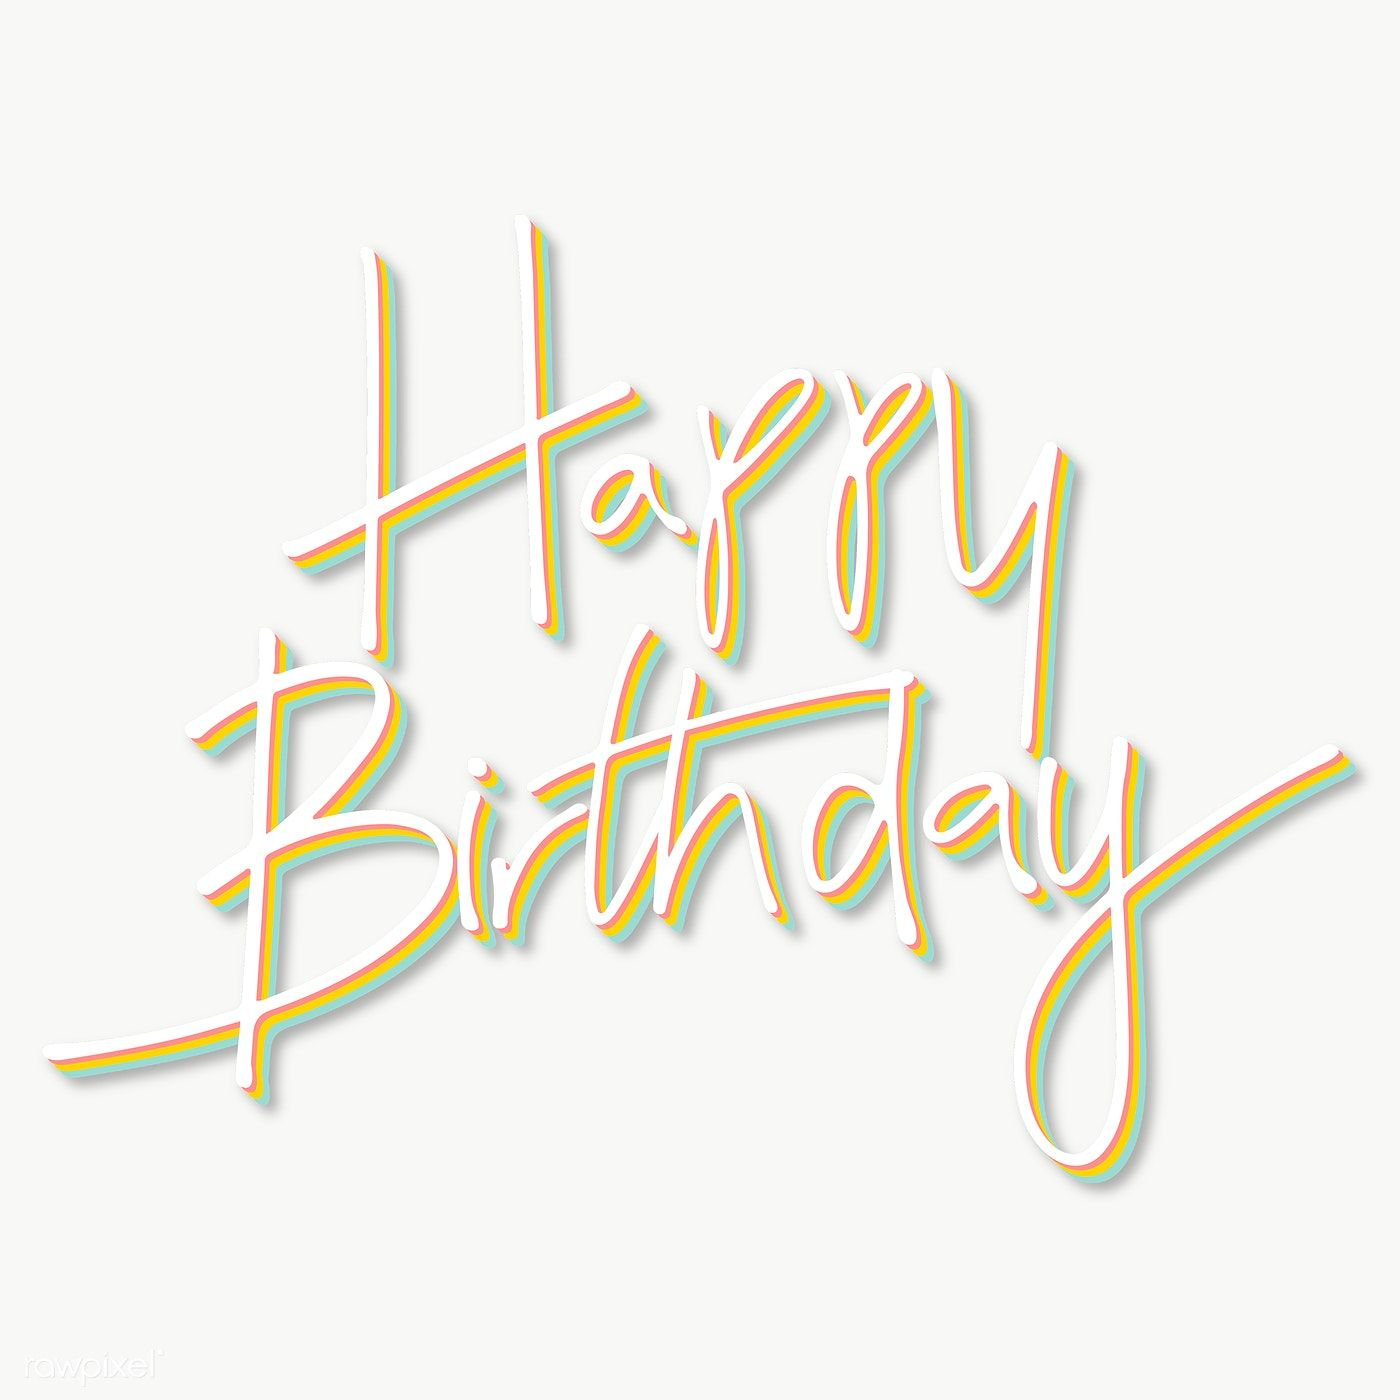 Happy Birthday Typography Transparent Png Free Image By Rawpixel Com Kappy Kappy Birthday Typography Happy Birthday Typography Happy Birthday Words Ideas for happy birthday text image png